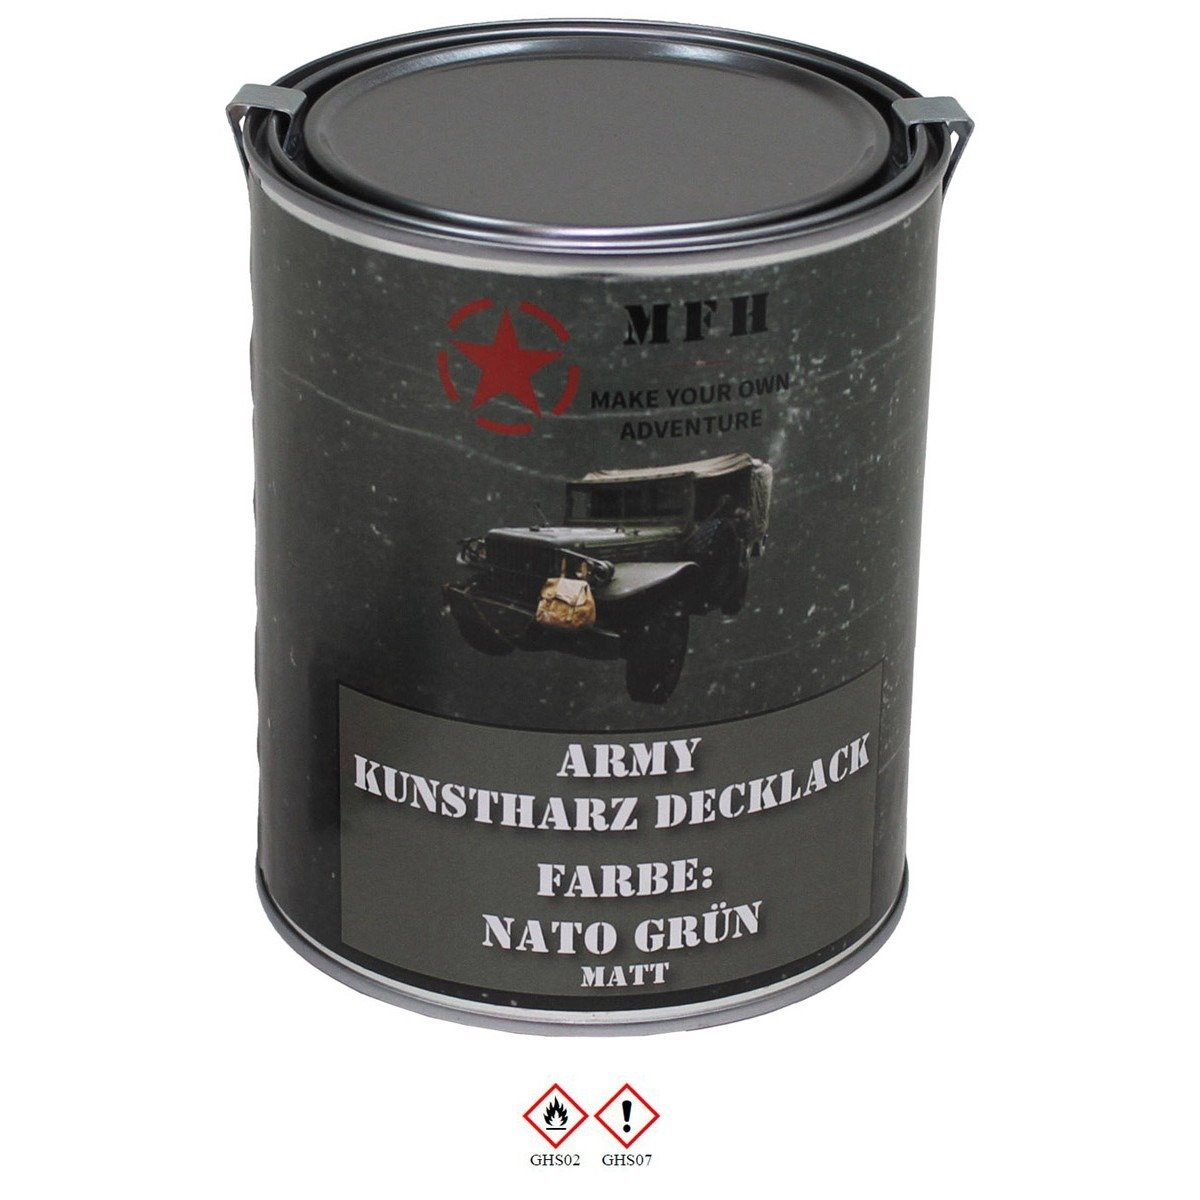 Army Paint, NATO GREEN, mat, 1 liter | Military Tactical